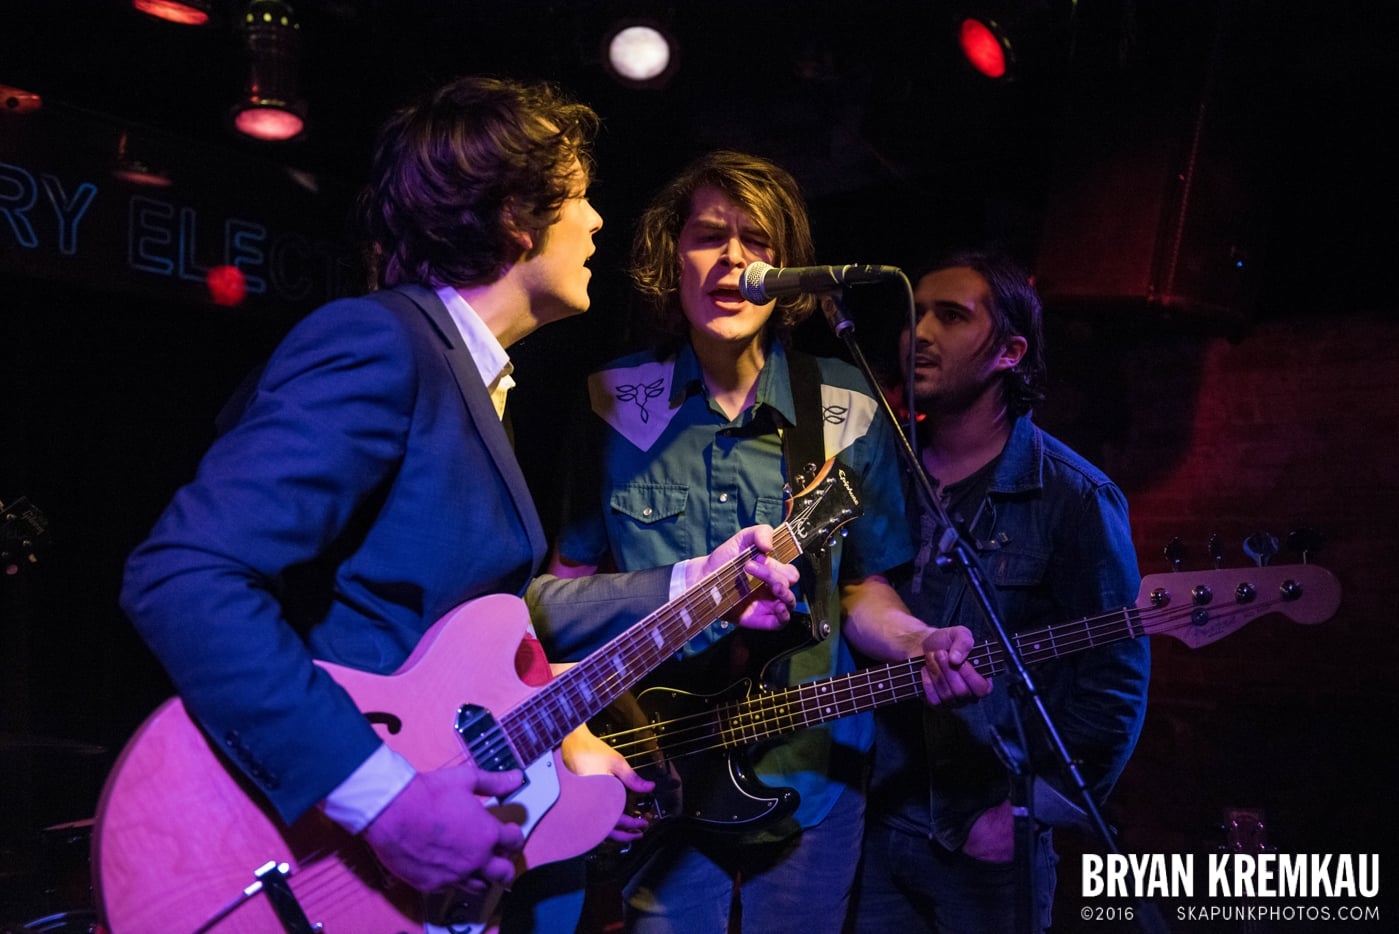 Trapper Schoepp & The Shades @ Bowery Electric, NYC - 11.20.14 (15)